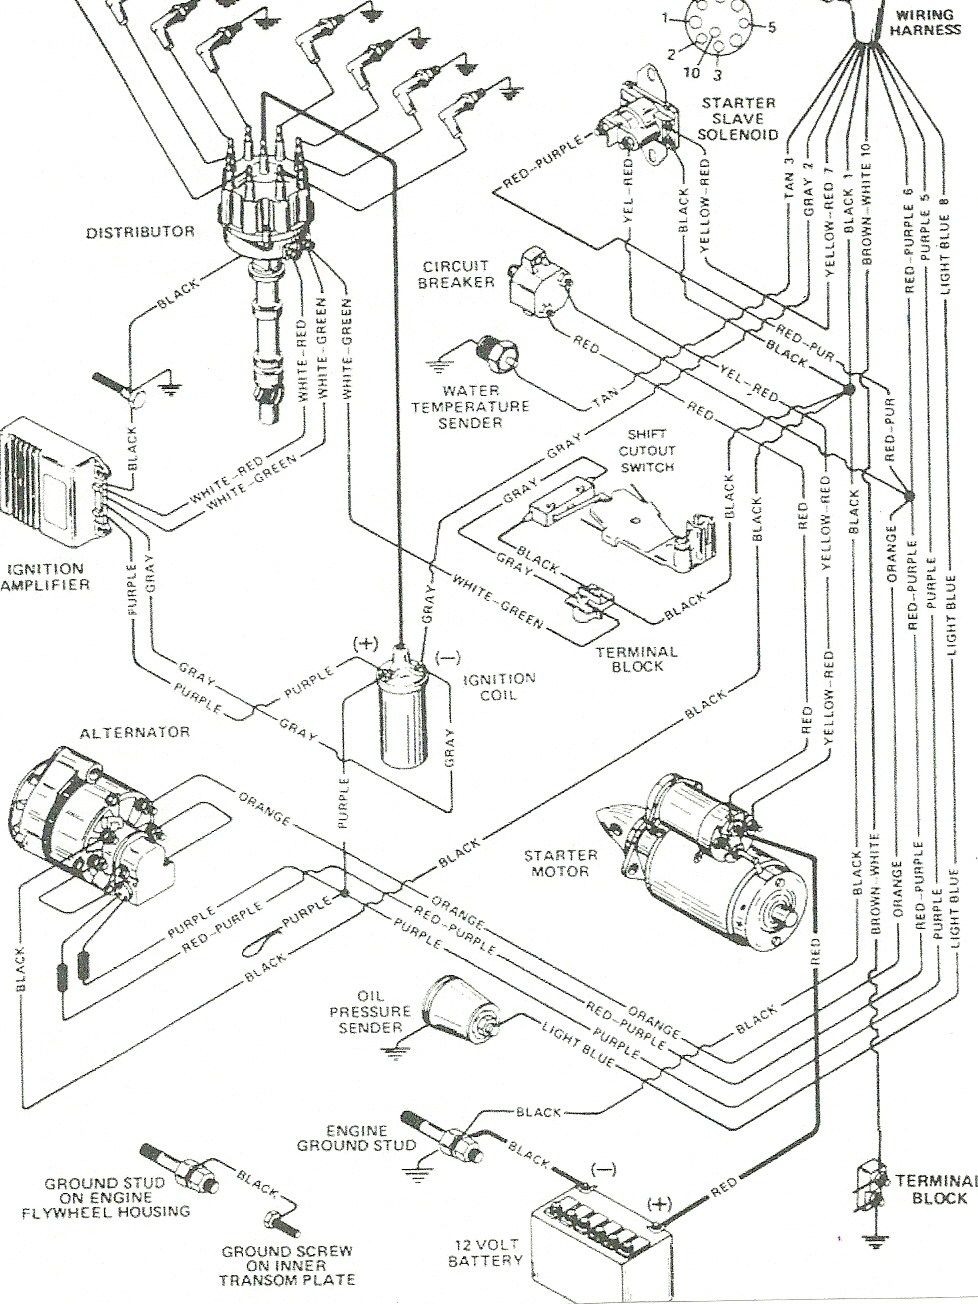 medium resolution of mercruiser 30 wiring diagram wiring diagram mercruiser 140 mercruiser alternator wiring diagram mercruiser 30 wiring